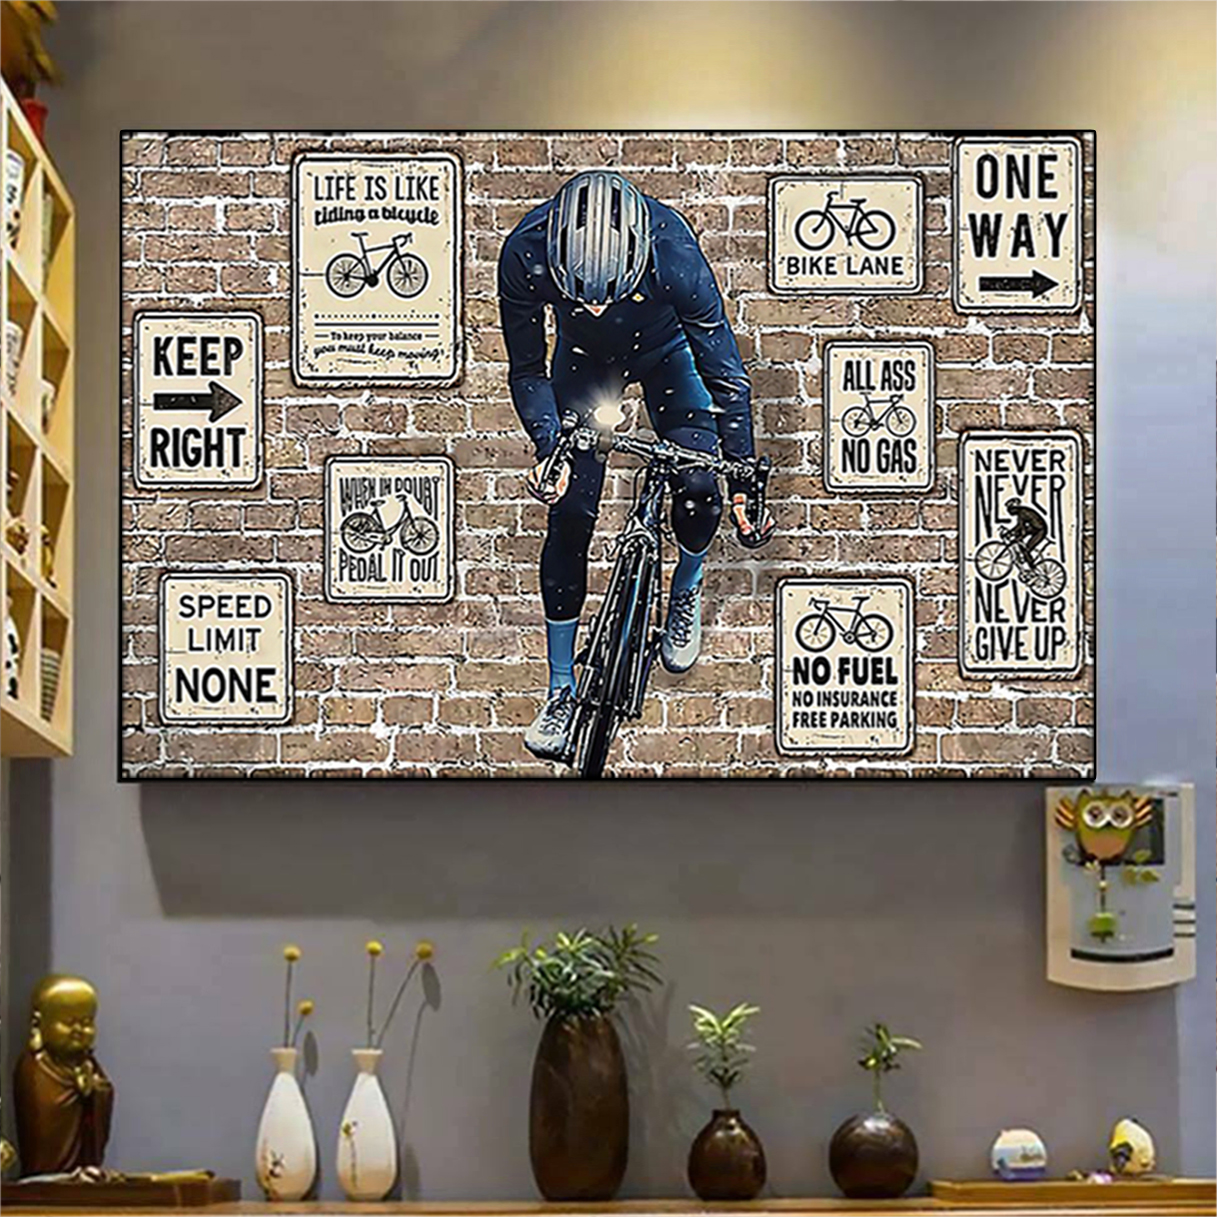 Cycling keep right one way poster A3